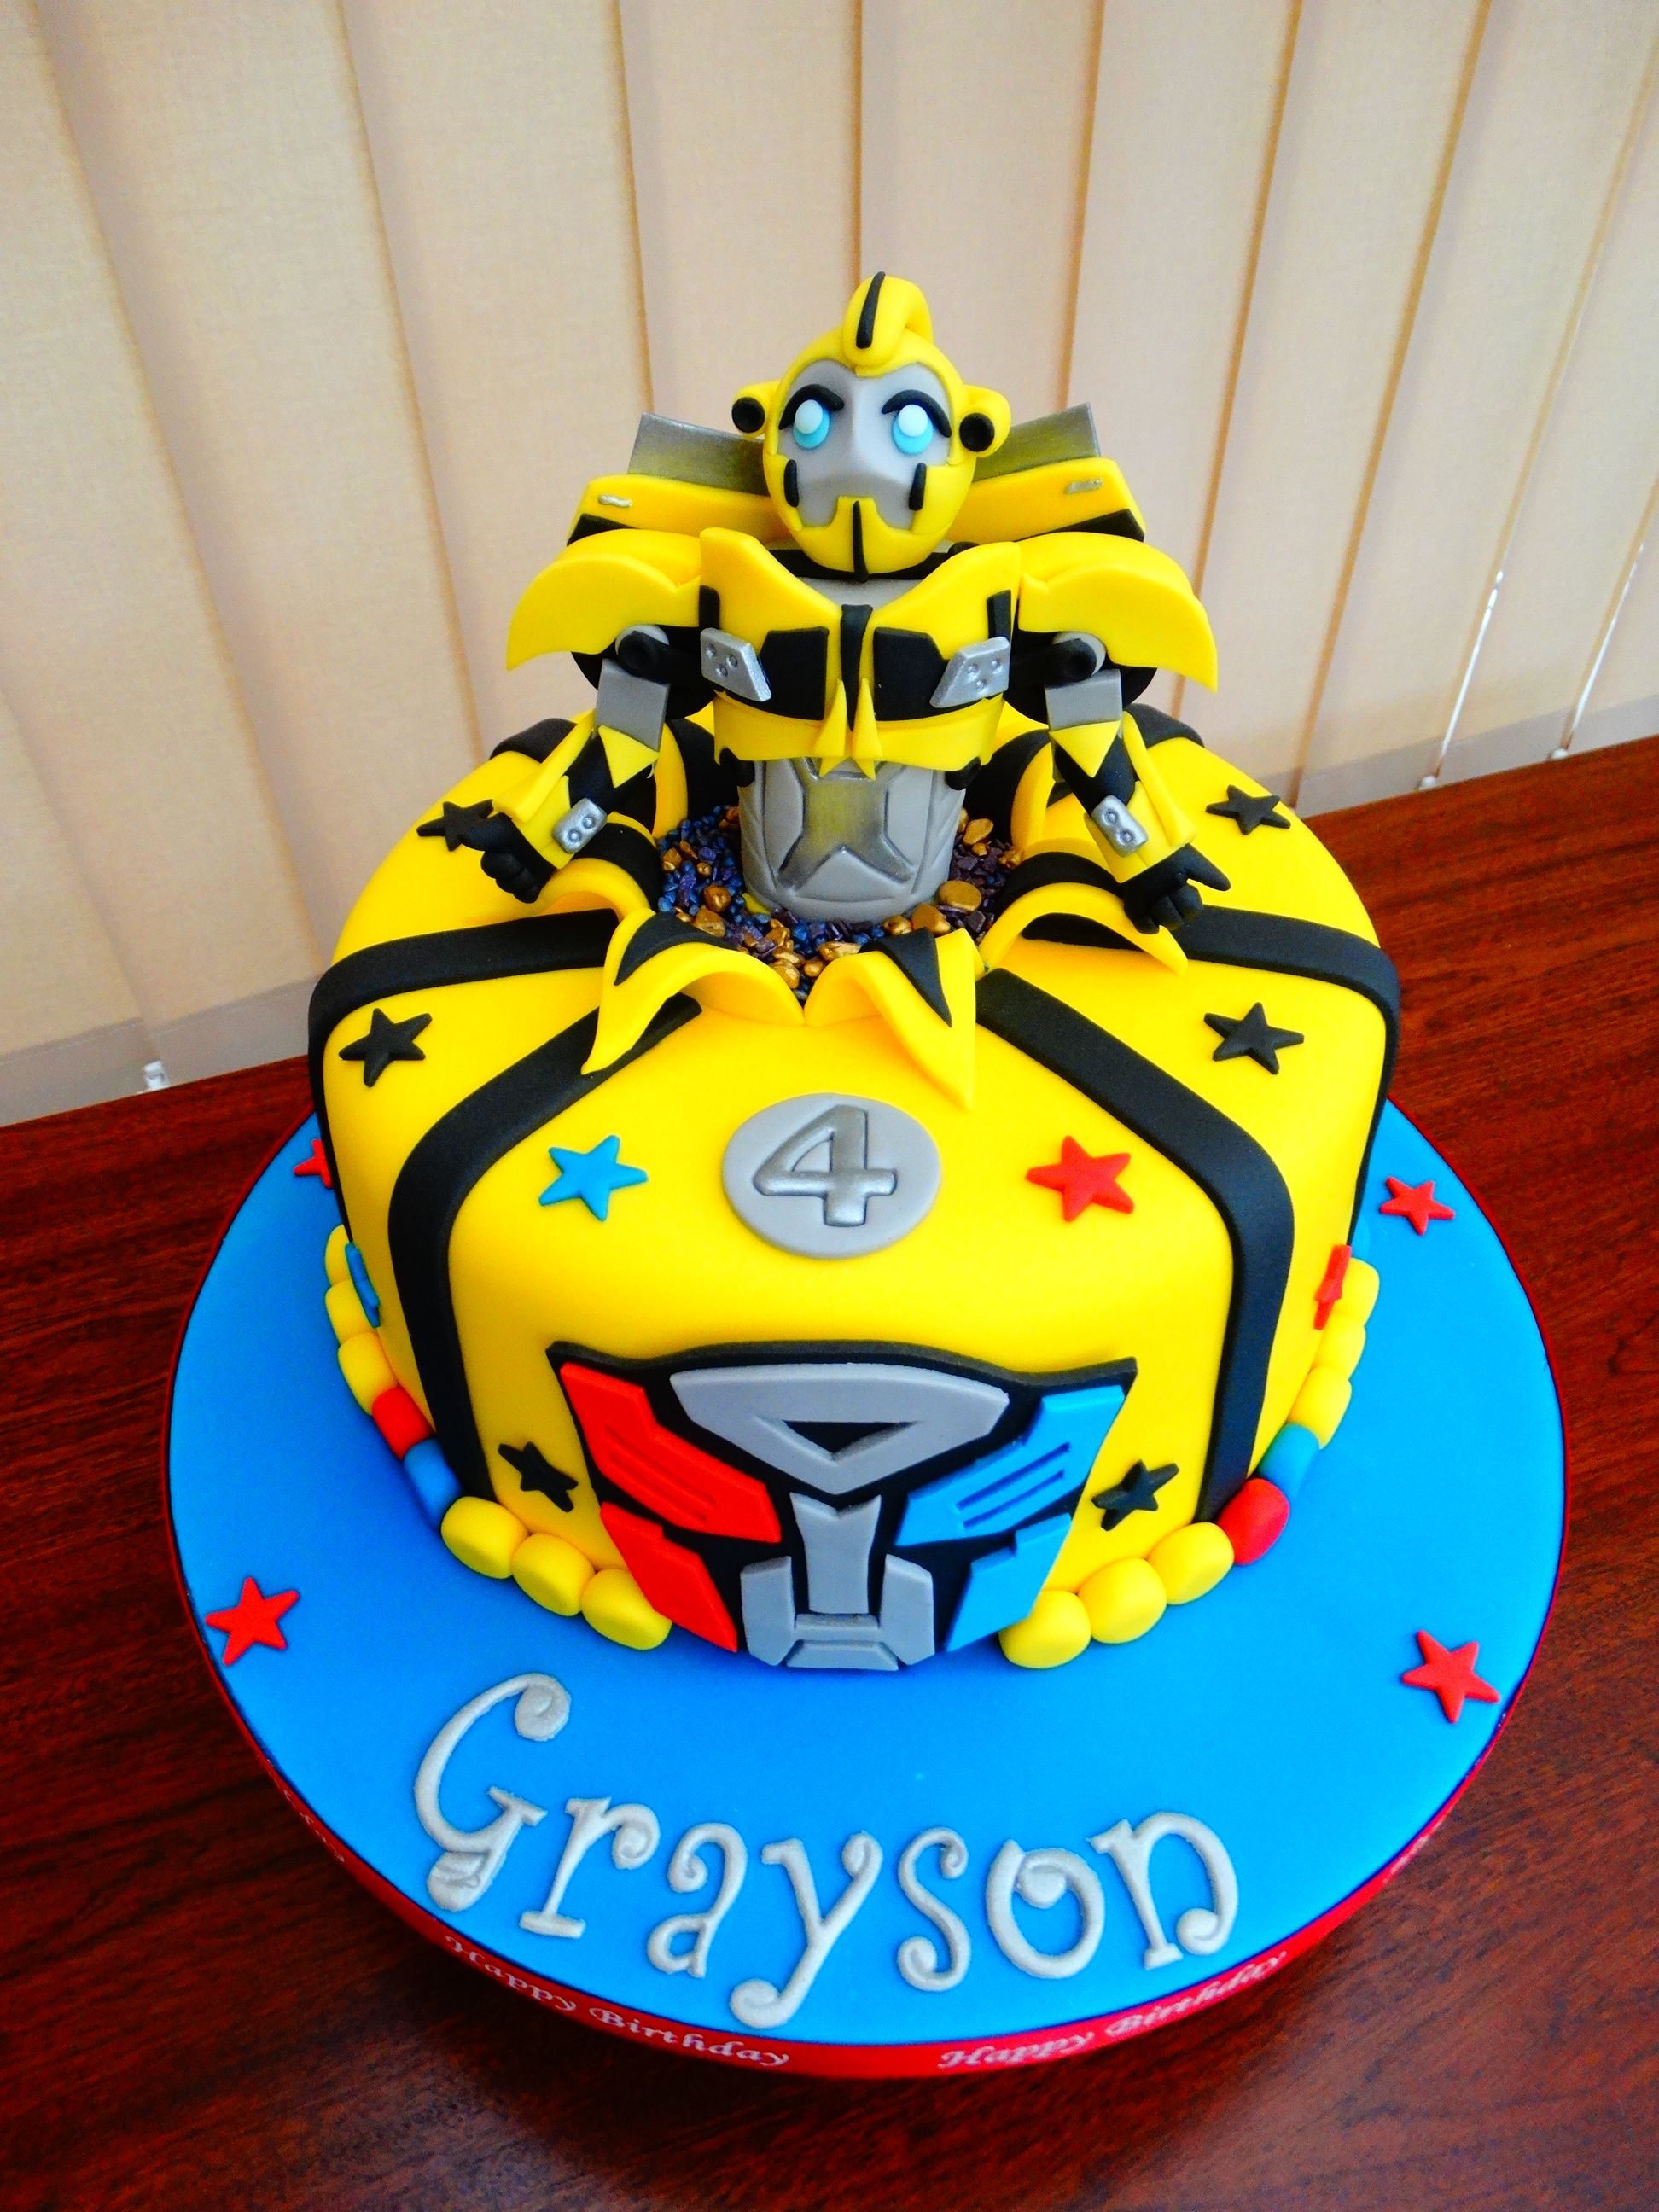 Admirable Bumblebee Transformers Cake Xmcx Transformers Birthday Cake Funny Birthday Cards Online Elaedamsfinfo